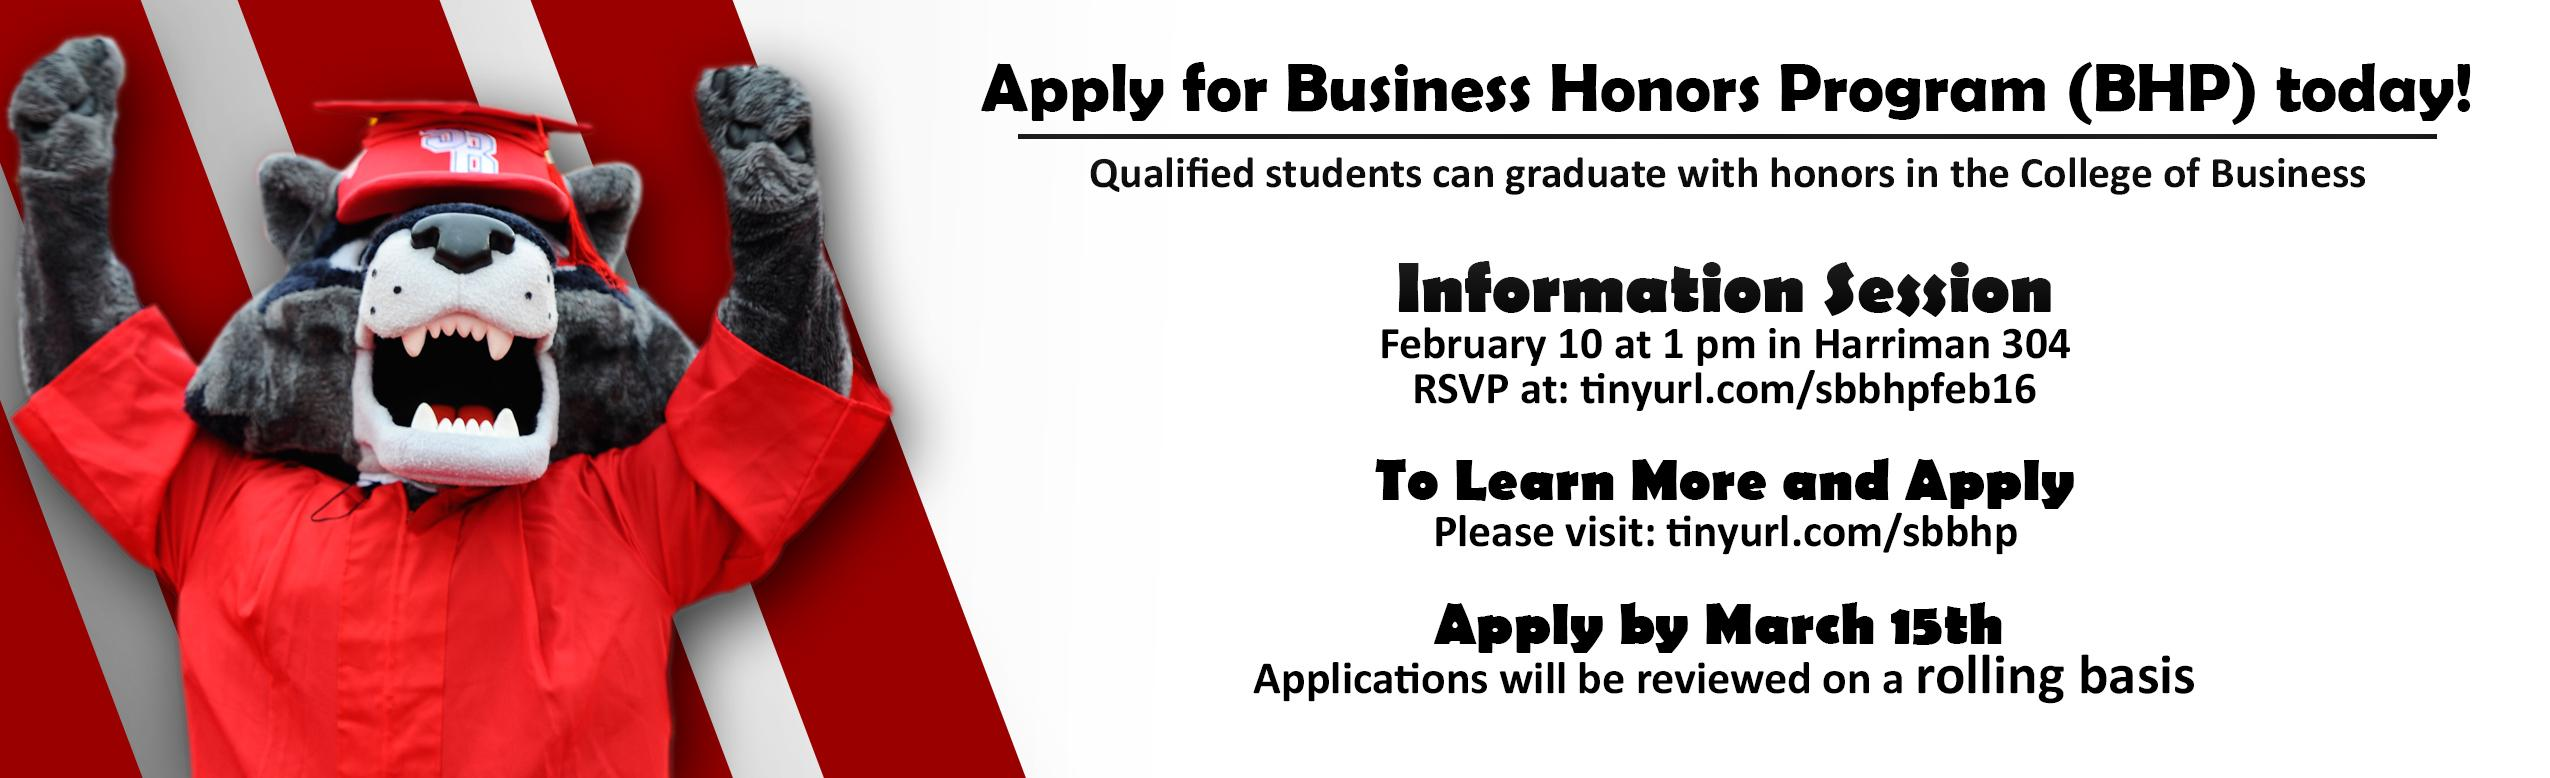 Apply for Business Honors Program (BHP) Today!